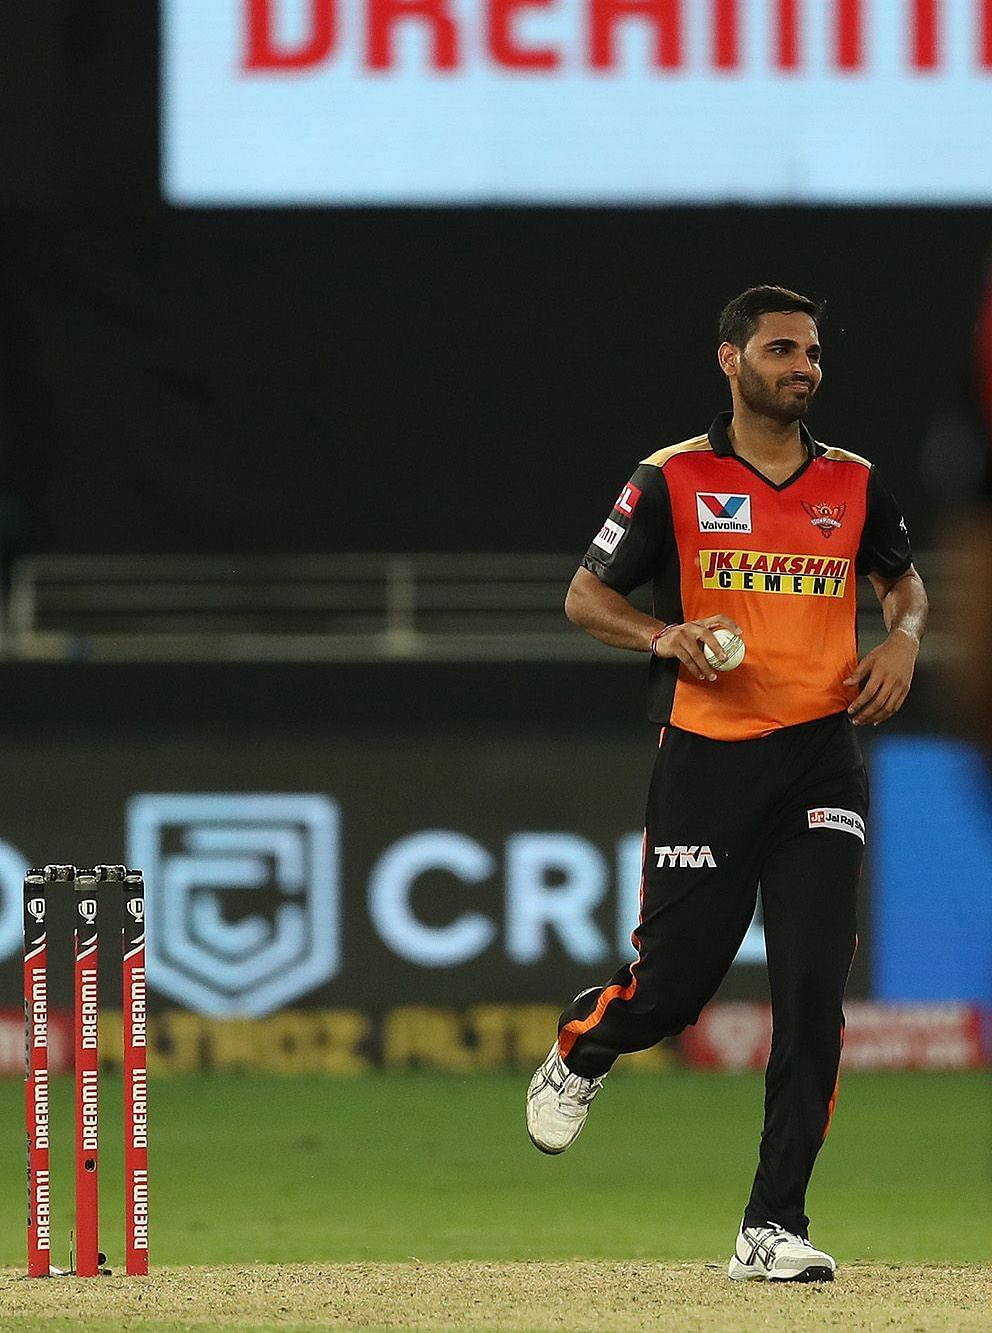 Bhuvneshwar Kumar pulled out of his runnup during the match against Chennai Super Kings